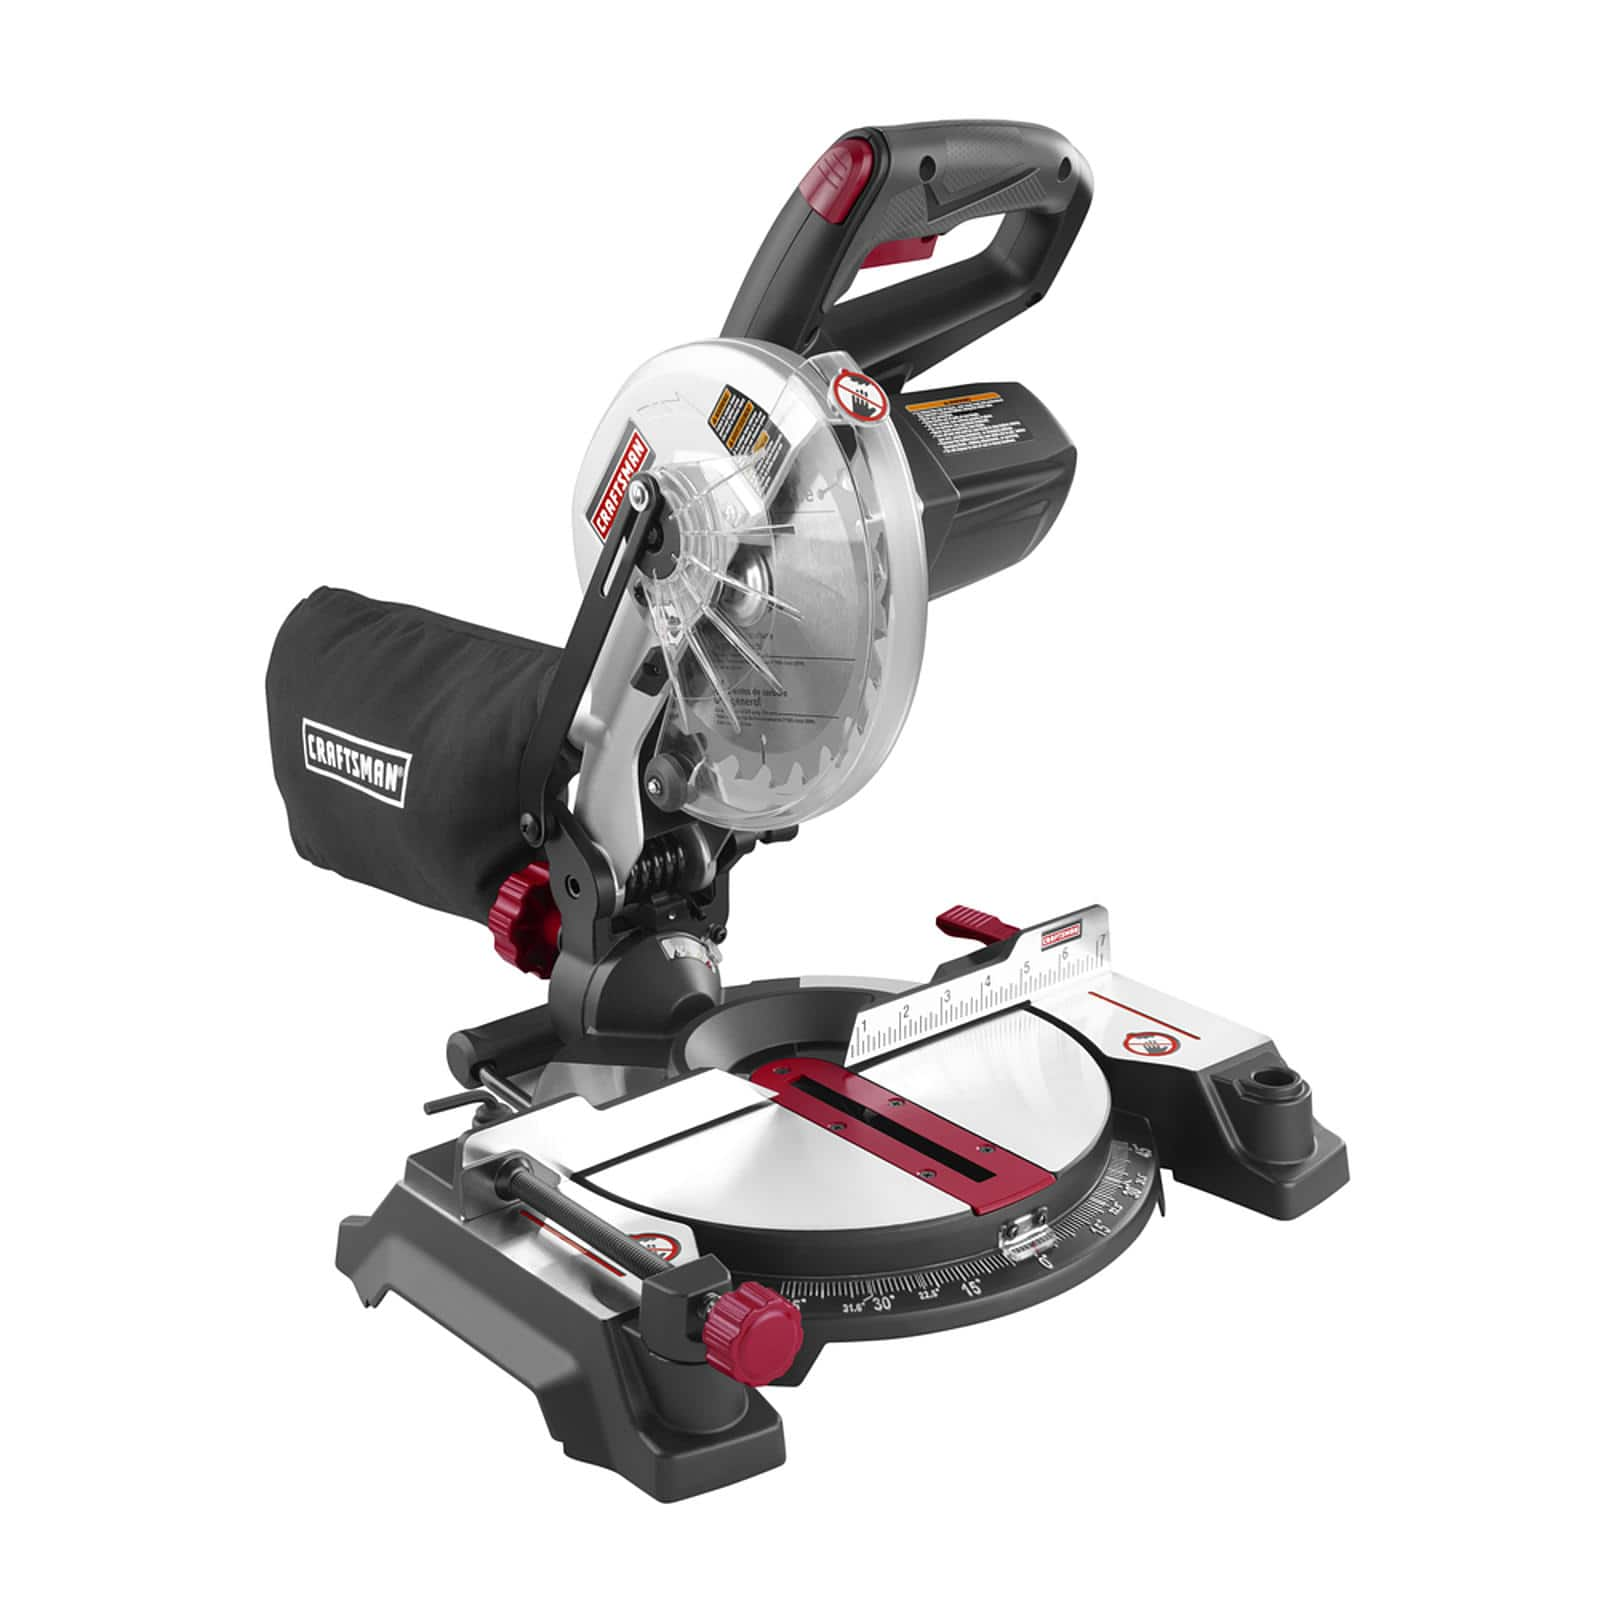 Sears.com Craftsman C3 19.2-Volt 7 1/4-in. Cordless Miter Saw = $85 + $10 SYWR points AC with FS/BOPS